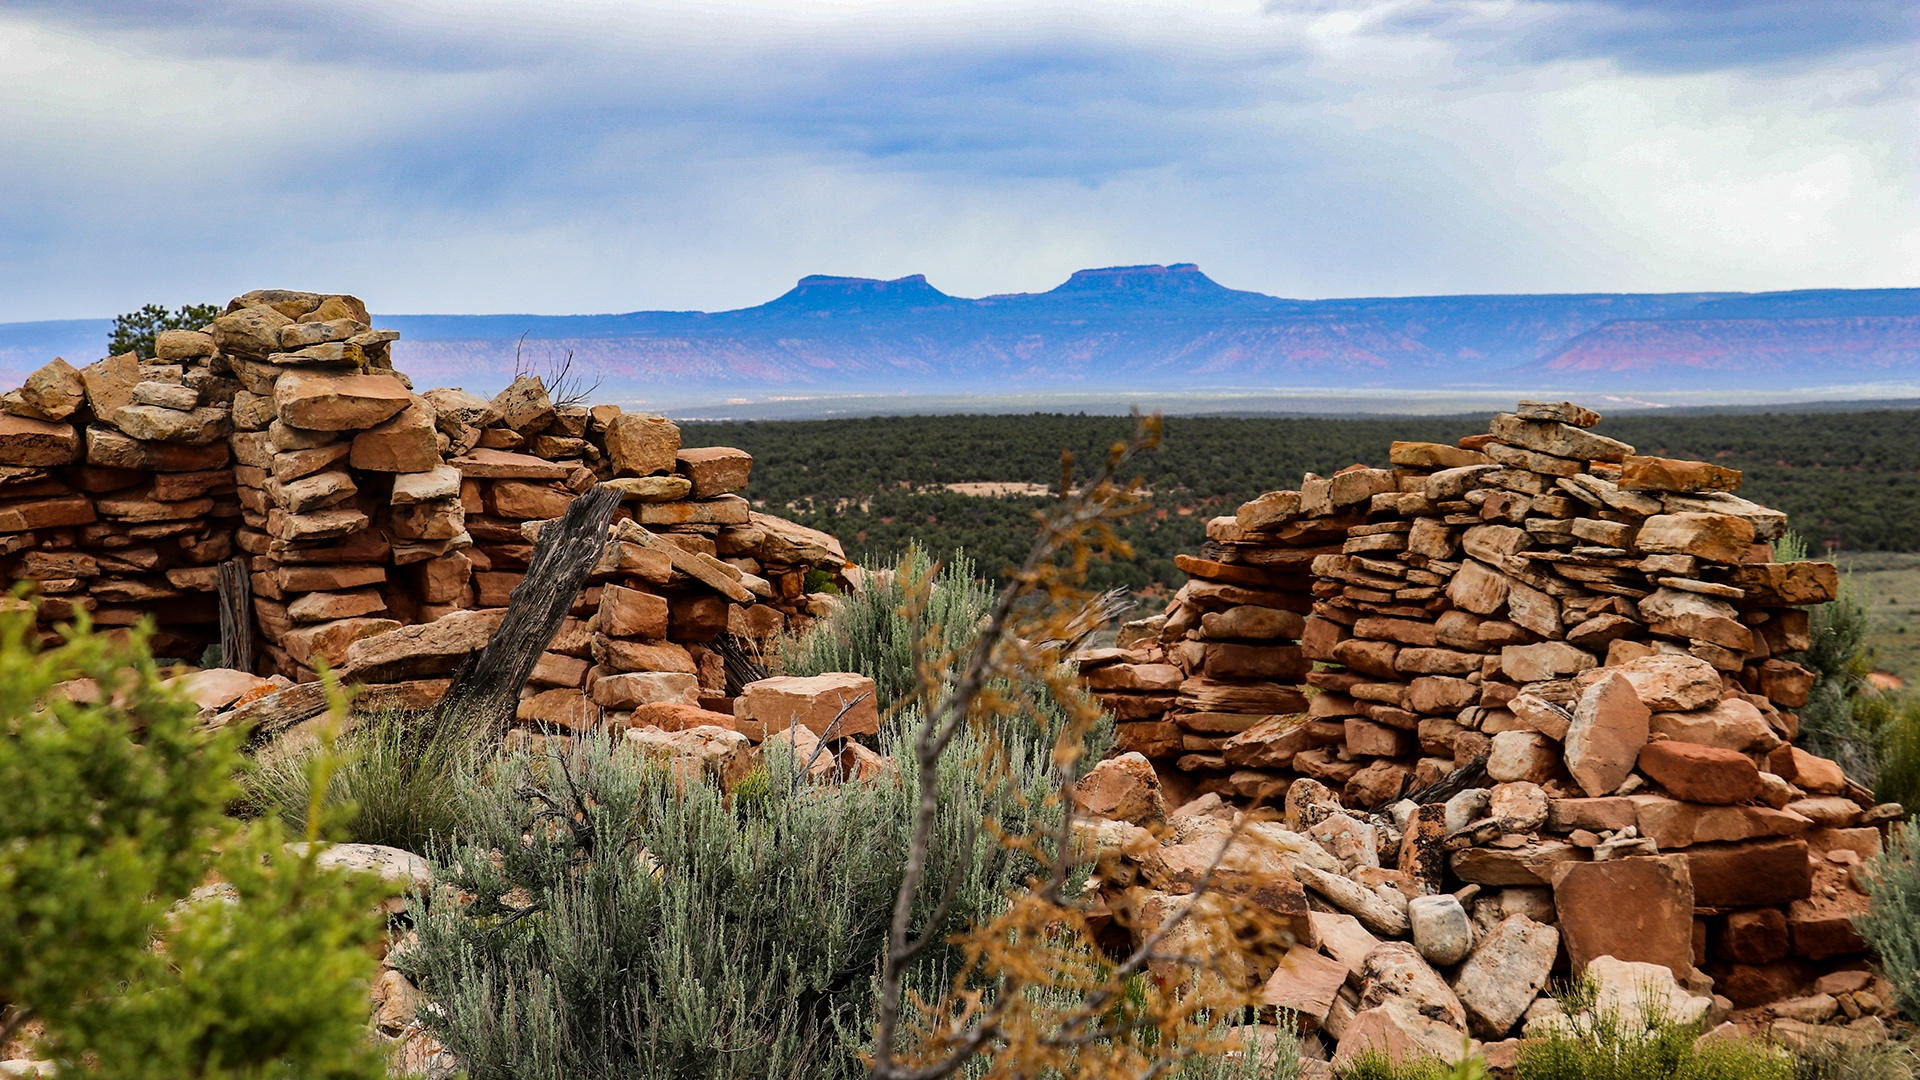 Above : Bear Ears National Monument (Photo credit: Tim Peterson)